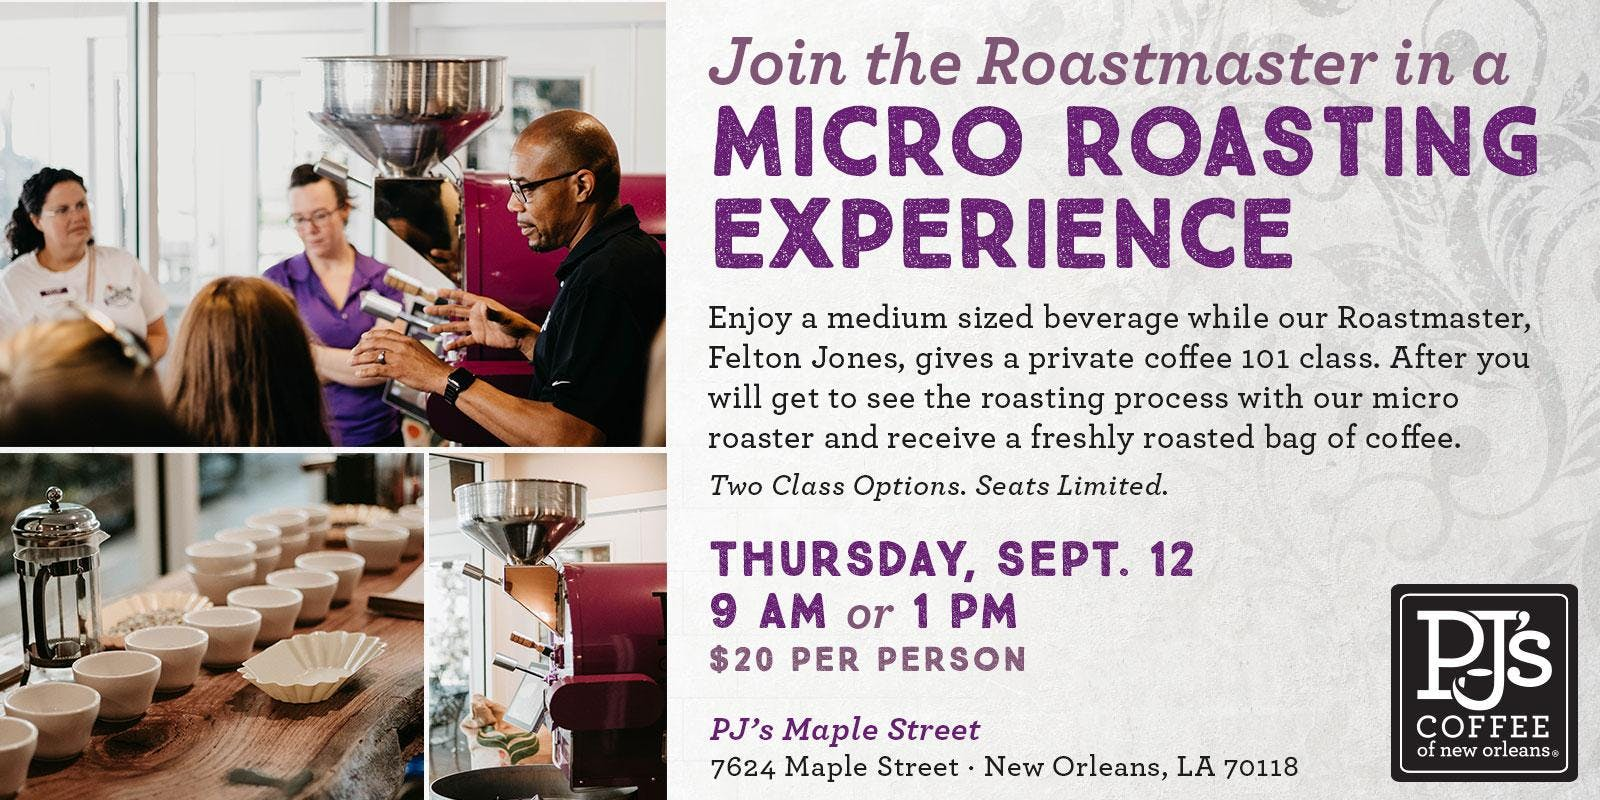 PJ's Micro Roasting Events, Saturday, Sept 12, 9AM or 1PM, 7624 Maple St. banner